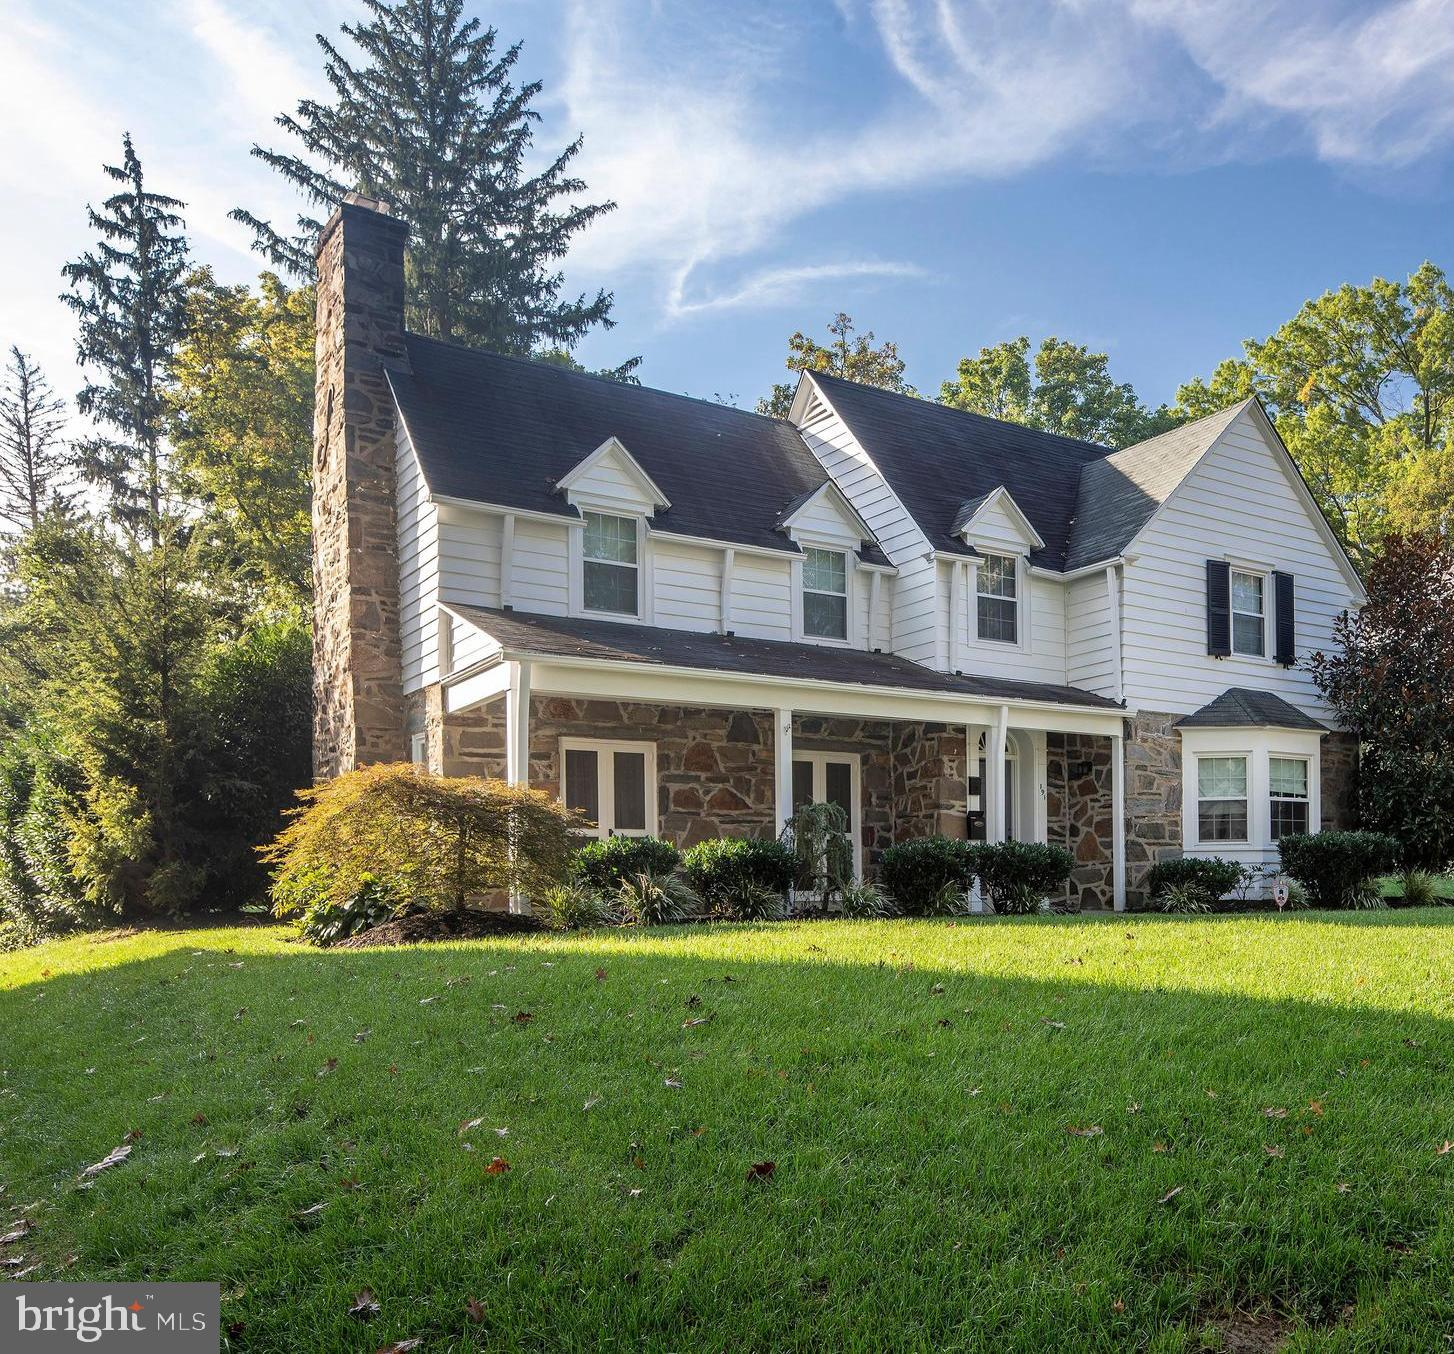 """Experience the best of the Main Line in this stunning, sun-drenched, historic stone colonial located on a lush level lot on one of the best and most secluded blocks in Ardmore. Lakeside Road is located on the Ardmore/Wynnewood border, offering ideal walkability to Whole Foods, the shops and restaurants of Ardmore (and Wynnewood), South Ardmore Park, and the Wynnewood train station, but also offering a Wynnewood """"feel,"""" surrounded on all sides by stately historic homes and mature trees.   This exceptional classic Main Line home offers the finest original interior finishes (including hardwood floors throughout, soundproof plaster walls, exceptional millwork, high ceilings, and a grand living room fireplace) combined with excellent kitchen, bath, and system upgrades, resulting in a complete and unparalleled lifestyle.  At the end of a hectic day, open your door and experience space, tranquility, light and flow. Entertain with pride in your gourmet granite/stainless chef's kitchen, in your spacious formal dining room highlighted by bay windows and French doors, in your ample family room featuring additional French doors overlooking your private back yard, or in your living room featuring a massive fireplace and two more sets of French doors. On warm summer nights, host barbecues on your classic blue flagstone patio and enjoy quiet conversation and birdsong. On cold winter nights, snuggle up to your grand stone fireplace and enjoy a good book, intimate conversation, or binge-watching your favorite tv show. In the evenings, stroll the rolling hills of Wynnewood and enjoy an ever-changing vista of stately historic homes unfolding on all sides.  Enjoy the perfect location offering prime walkability, secluded green spaces, a 10 minute commute to center city Philadelphia, and the renowned Lower Merion School District."""